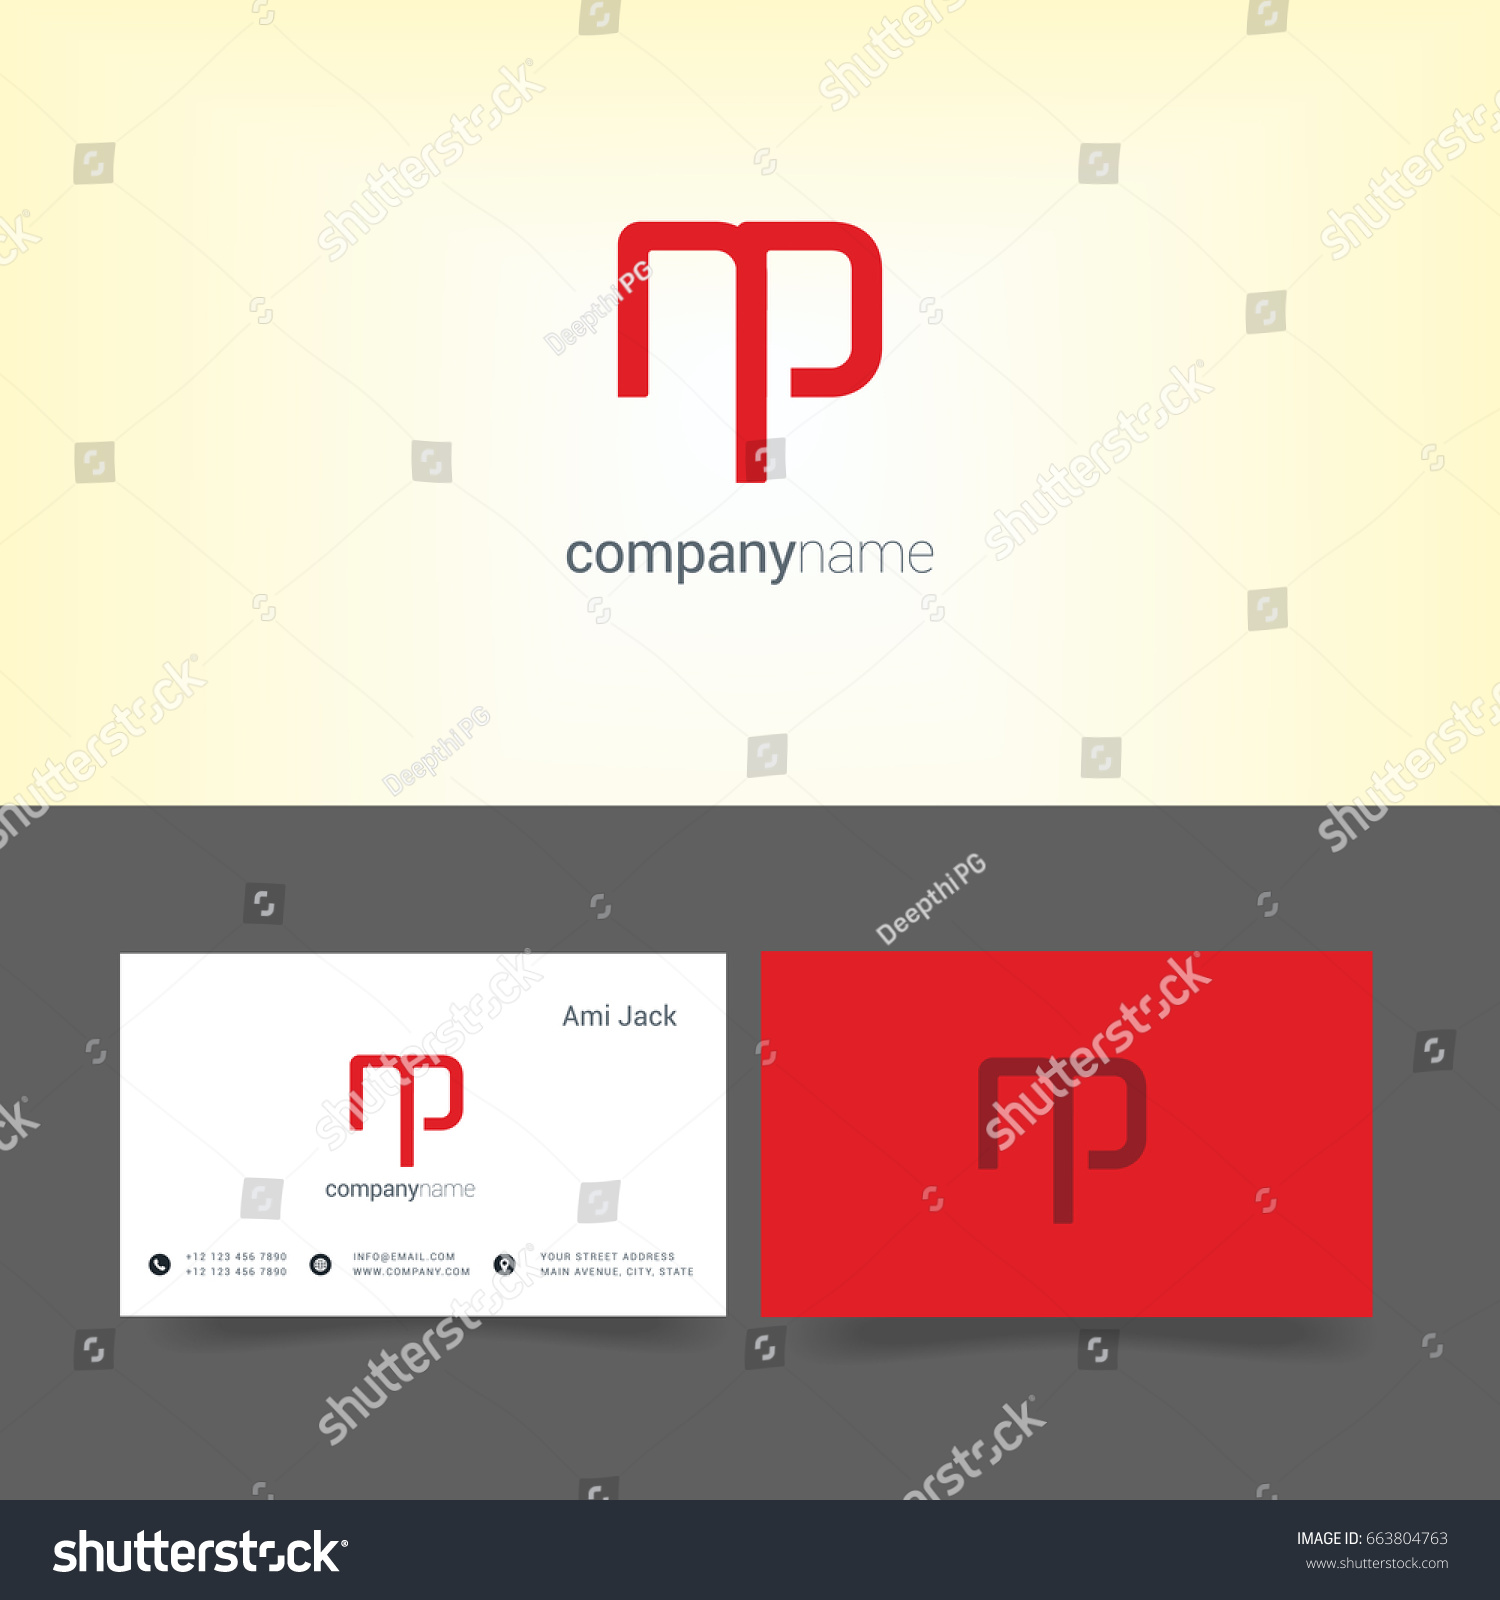 Sample of business letter argument how to set up a business business letter logo example of a critical analysis essay stock vector n p joint logo letter design with business card template 663804763 business letter magicingreecefo Gallery